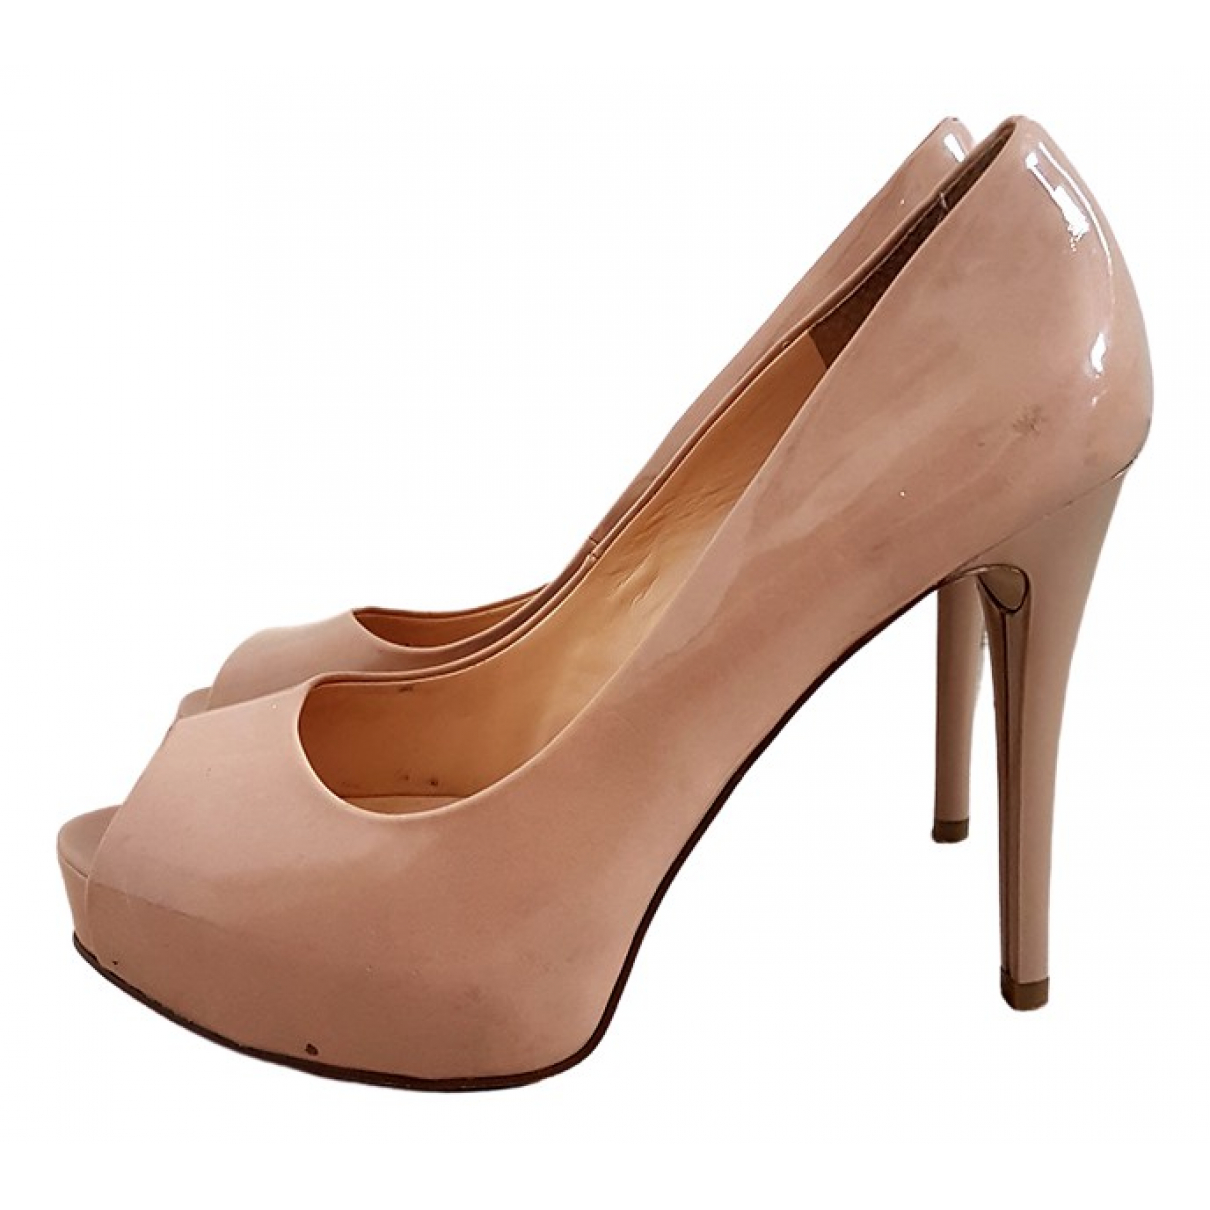 Guess \N Patent leather Heels for Women 8 US